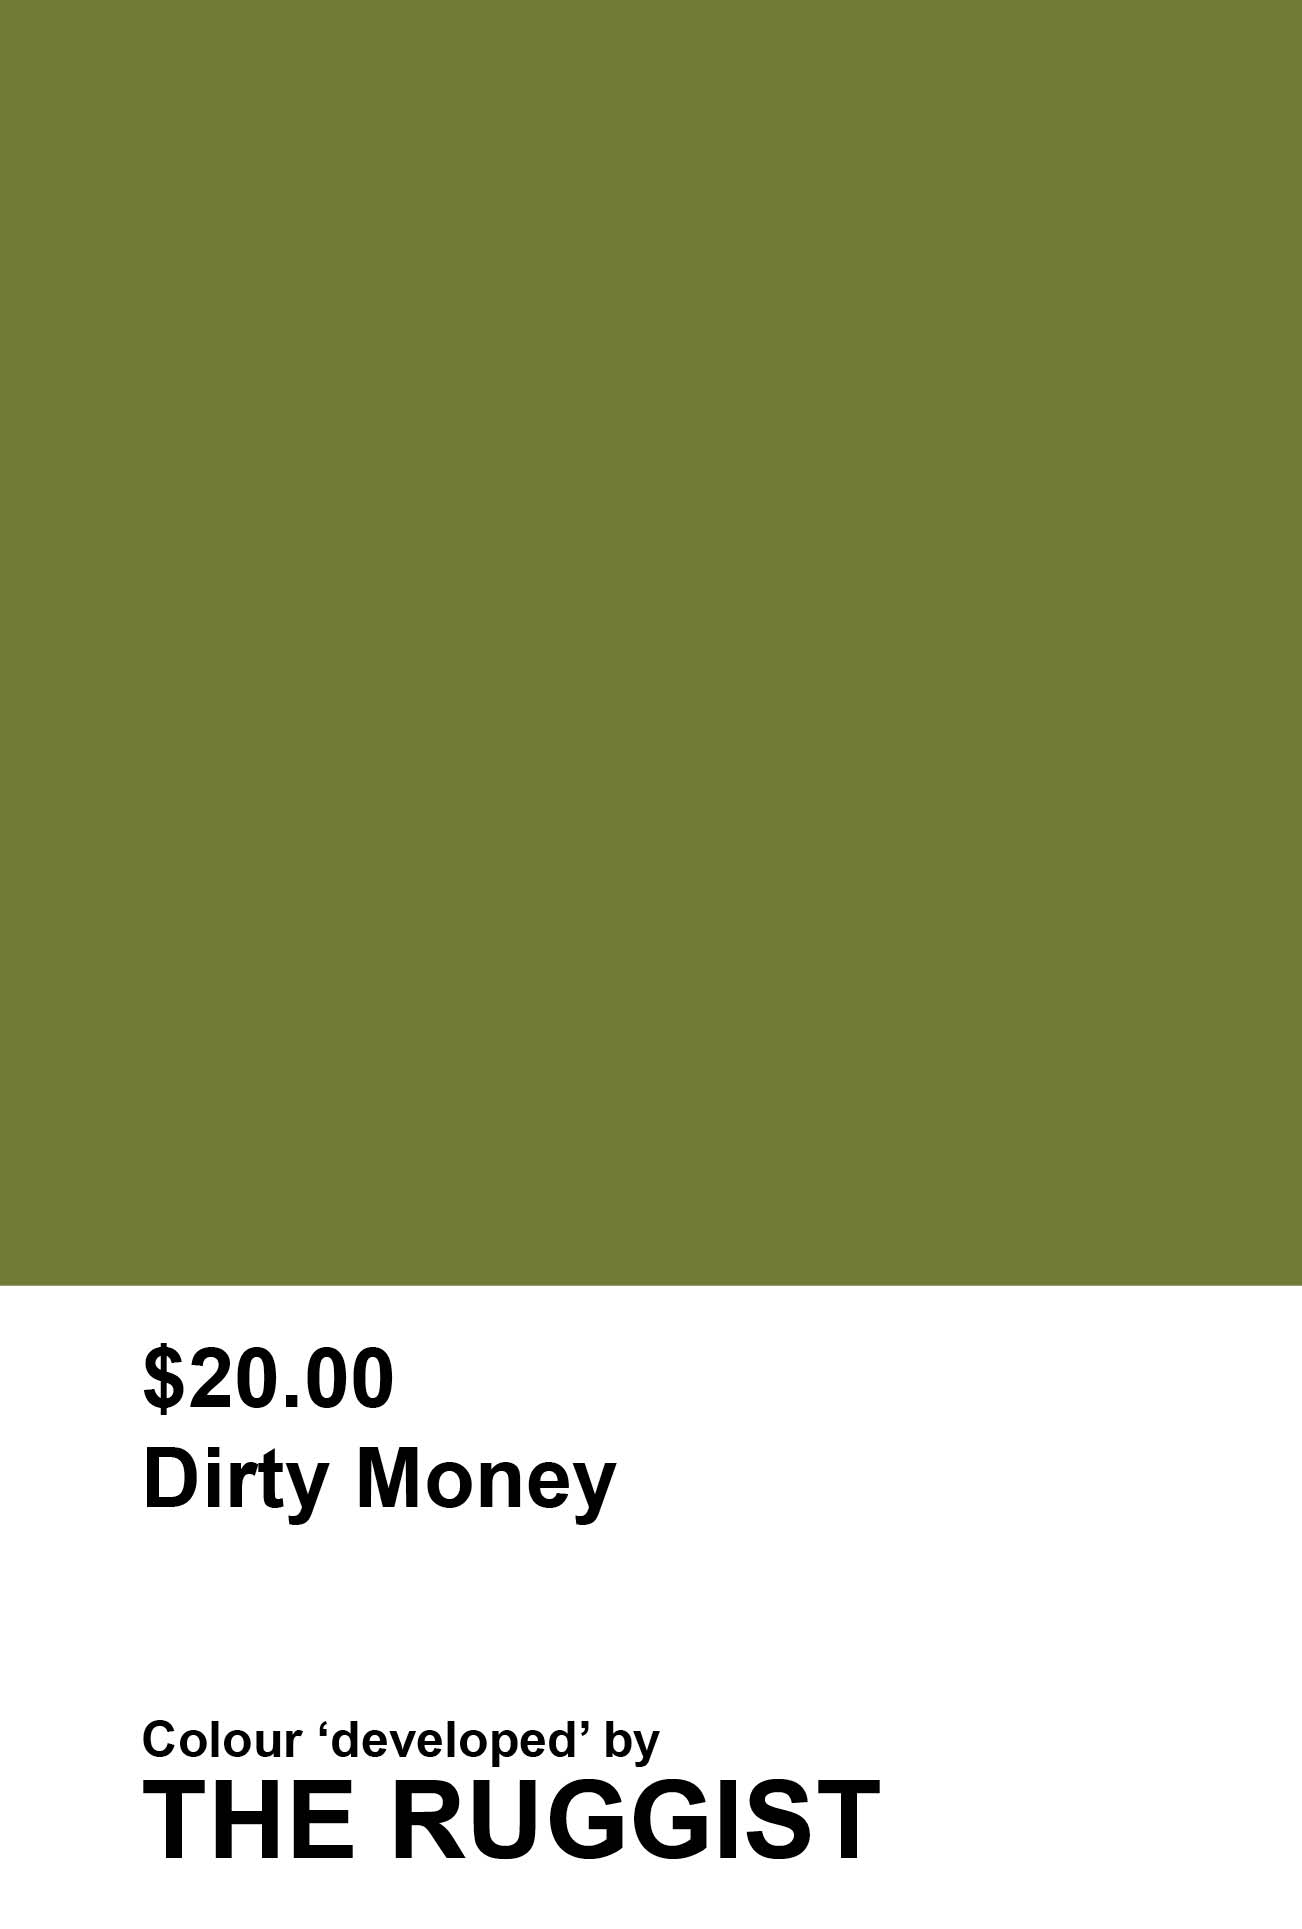 'Dirty Money' colour reference as 'developed' by The Ruggist. | Image by The Ruggist.